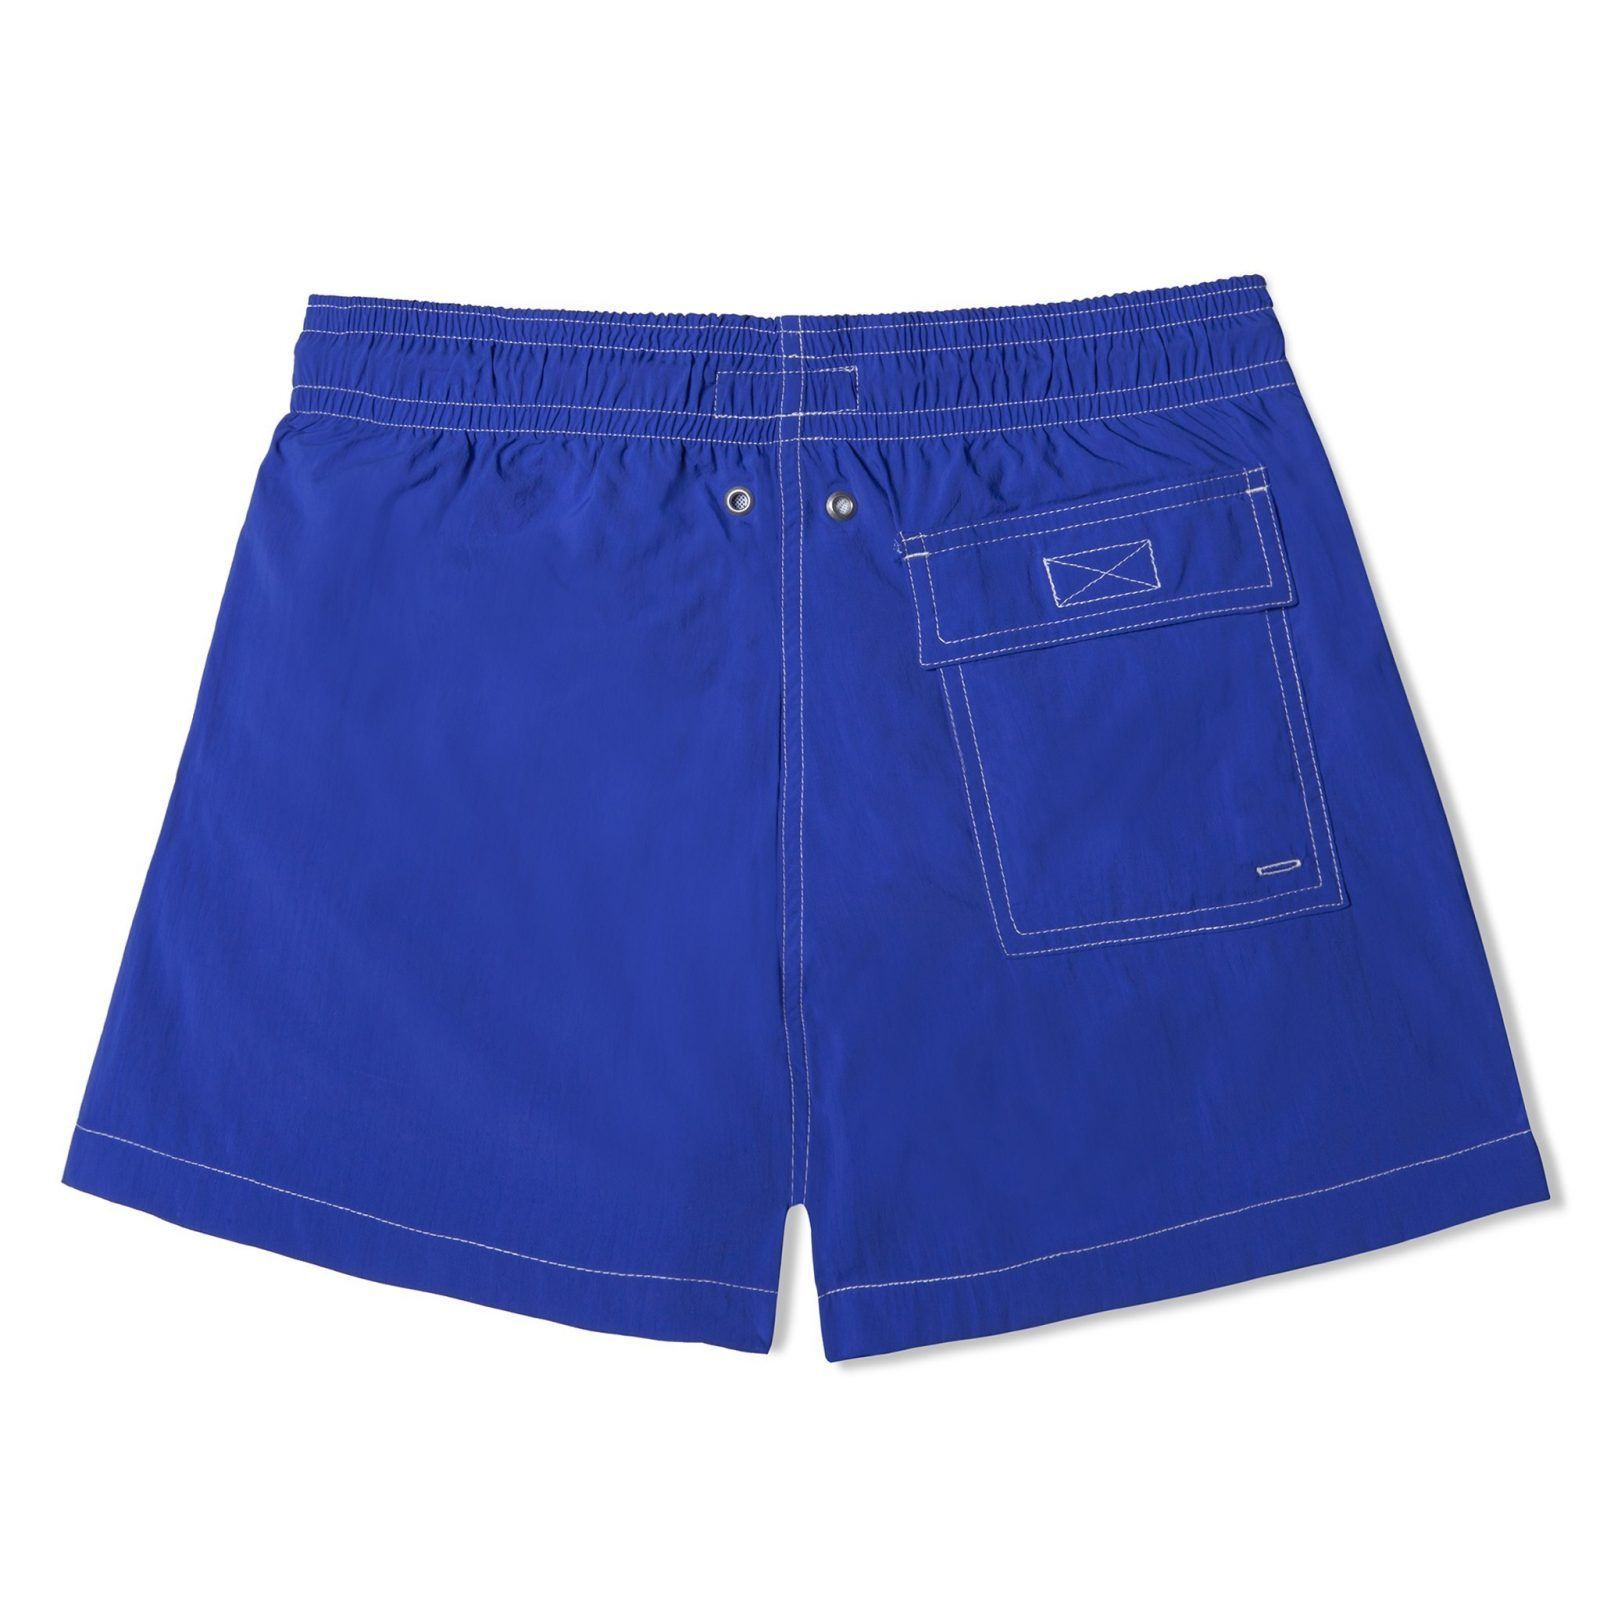 Short-Length Swim Shorts-453